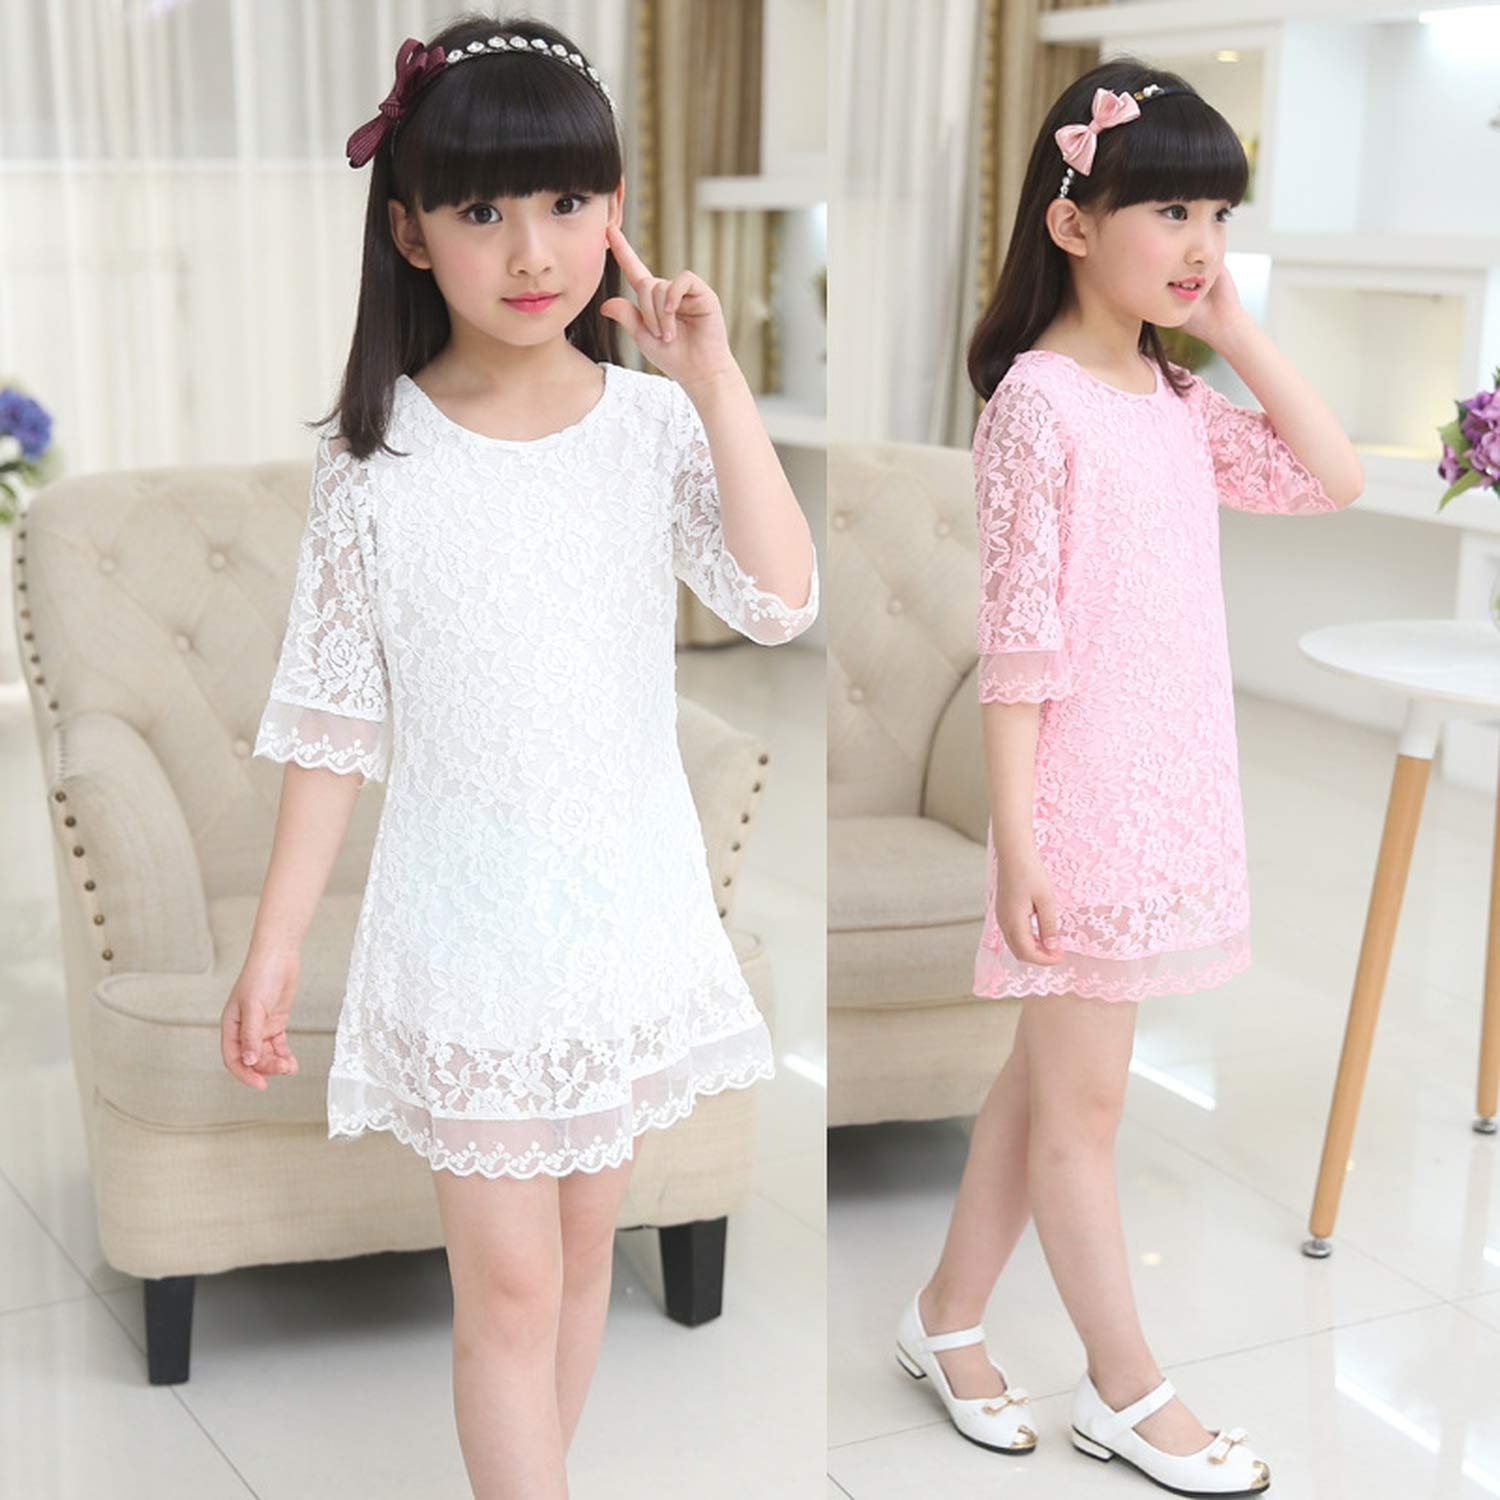 Kids 2018 Summer Autumn Lace Dress White Large Size Girls Dress Princess 3 4 6 8 10 12 14 16 18 Years Old Baby Girl,White,7 by Gooding Day (Image #3)